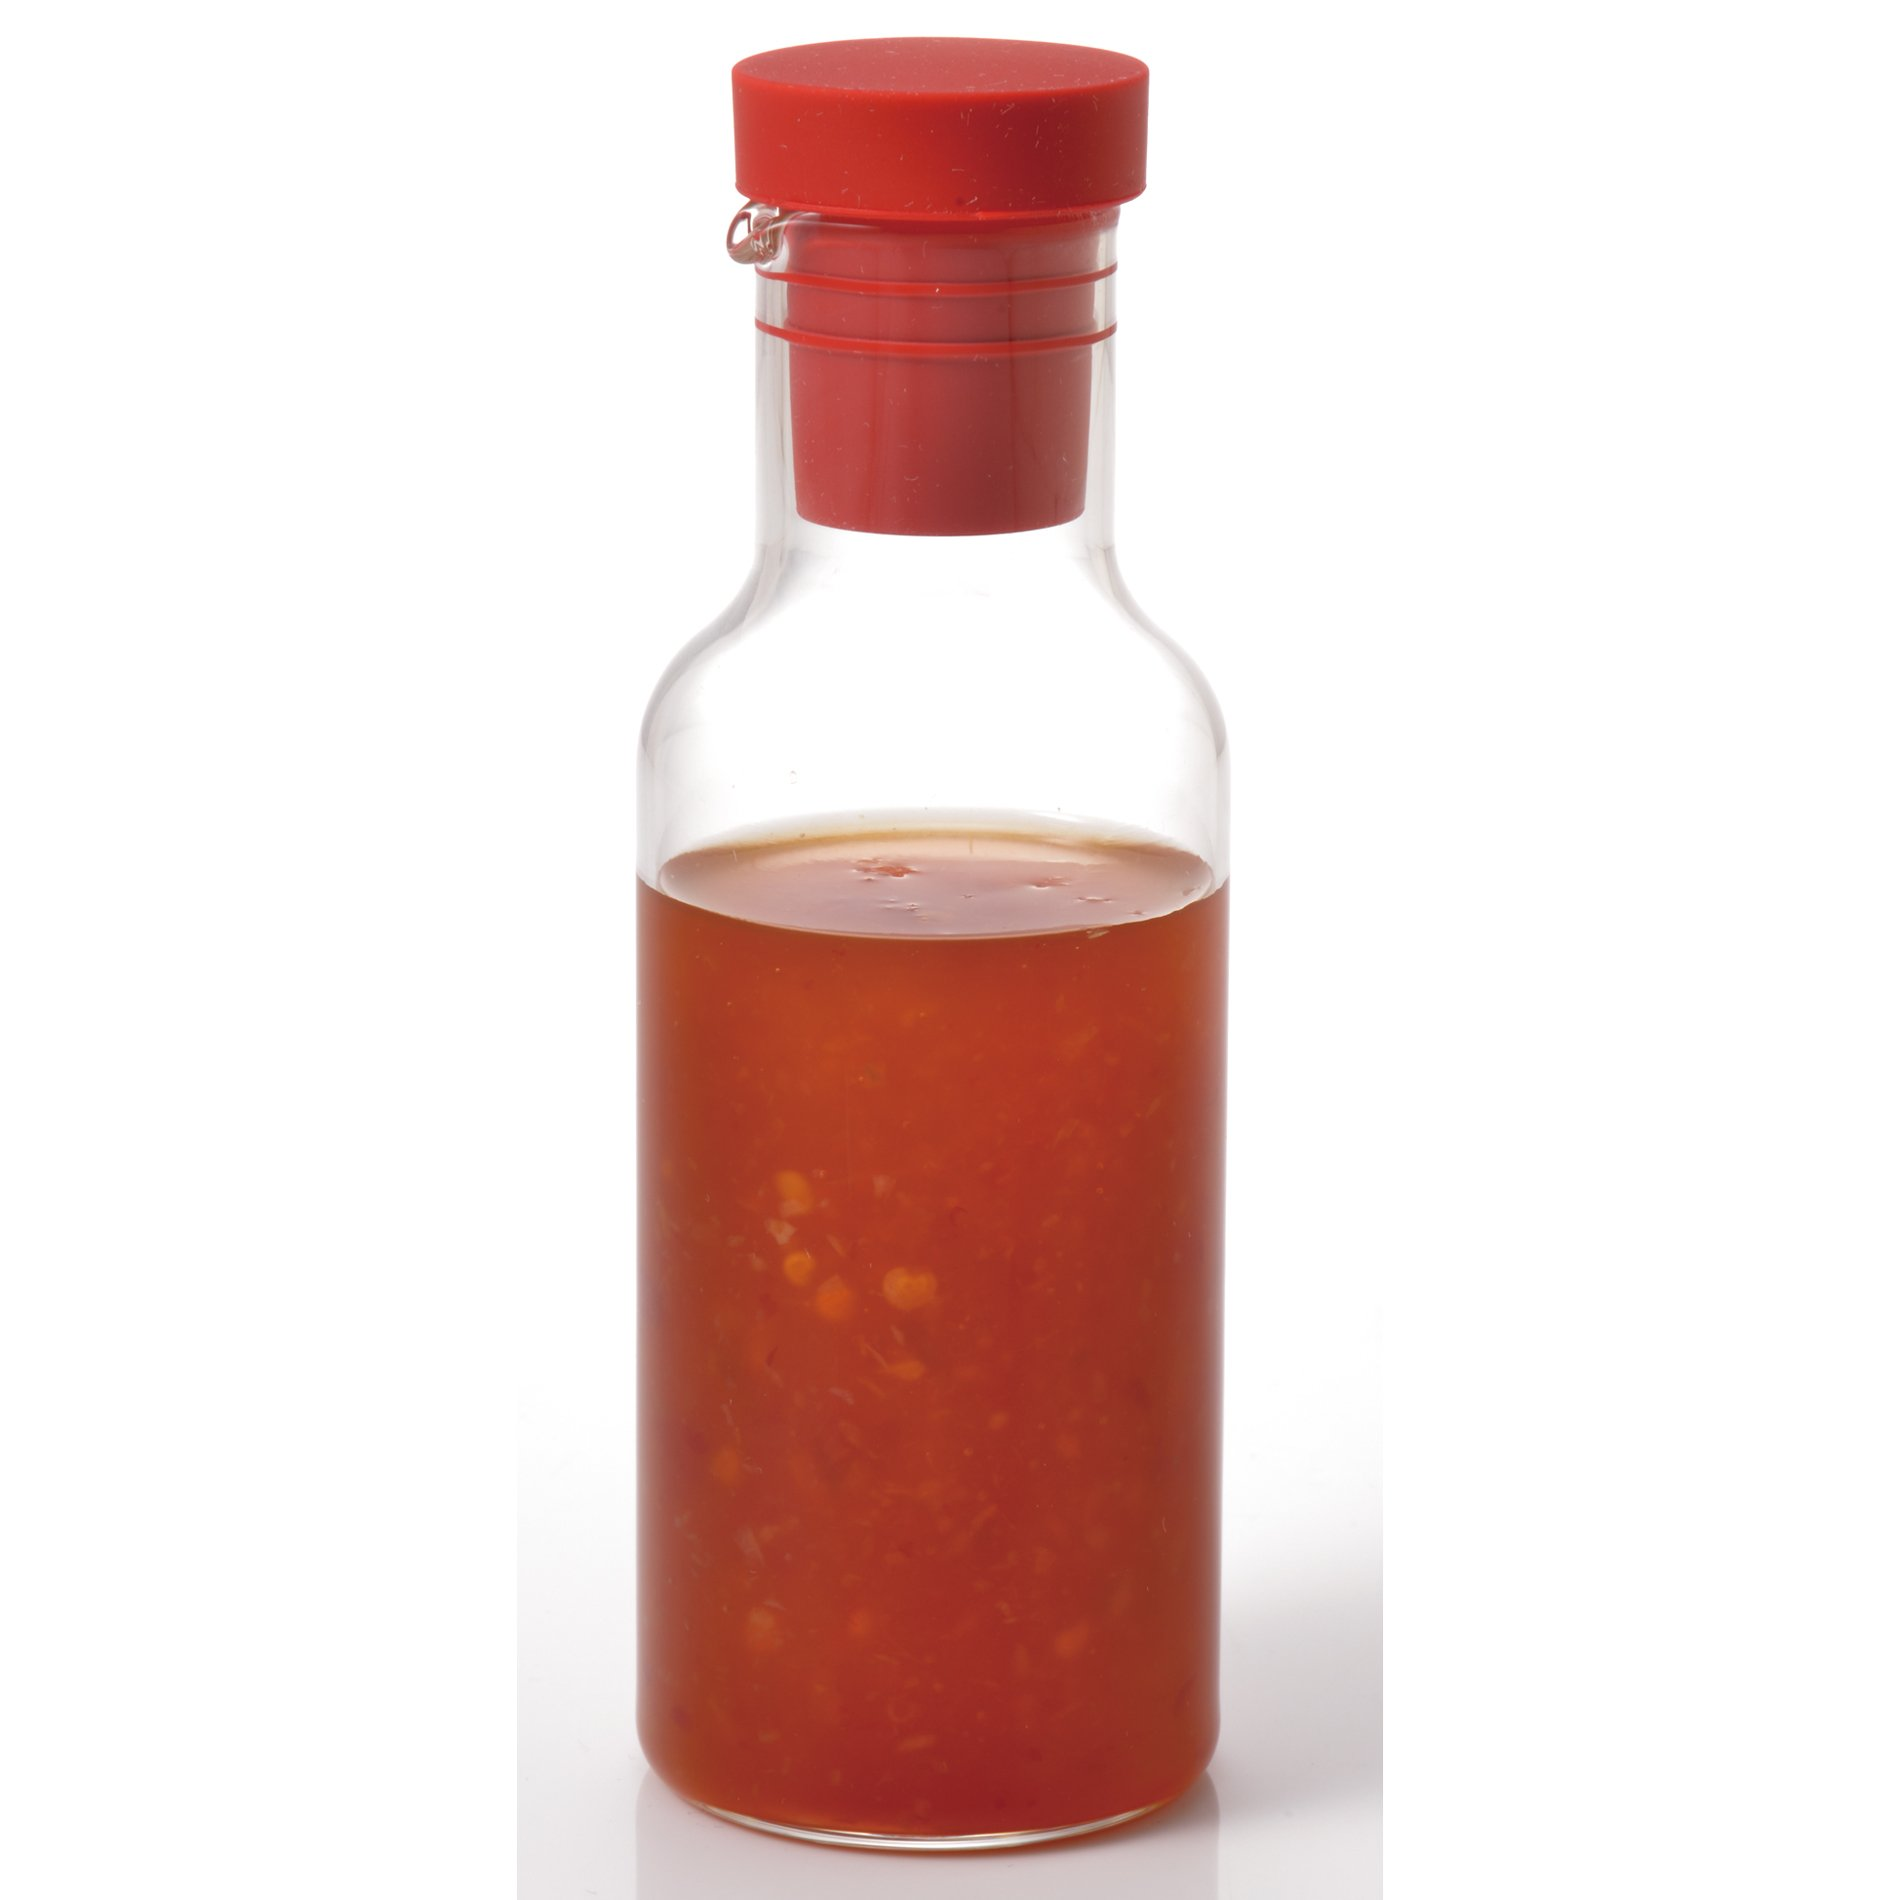 Hario Cooking Bottle, 150ml, Red by Hario (Image #3)